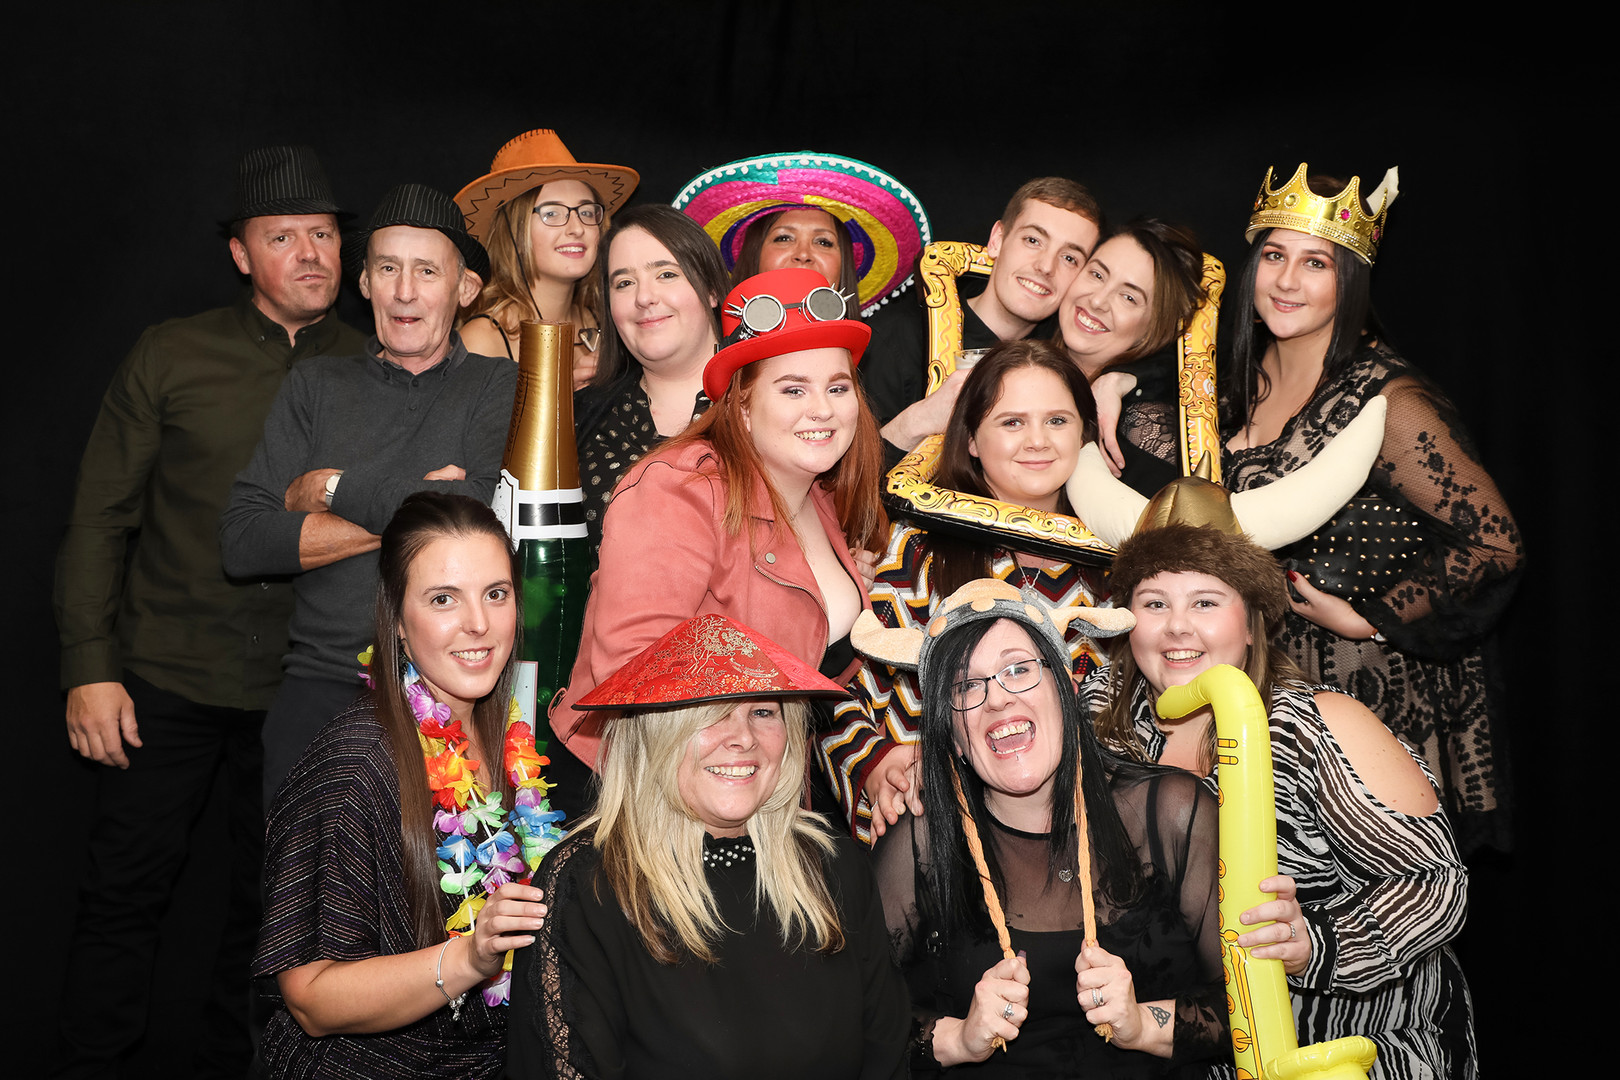 photo-booth-hire-warrington-004.jpg